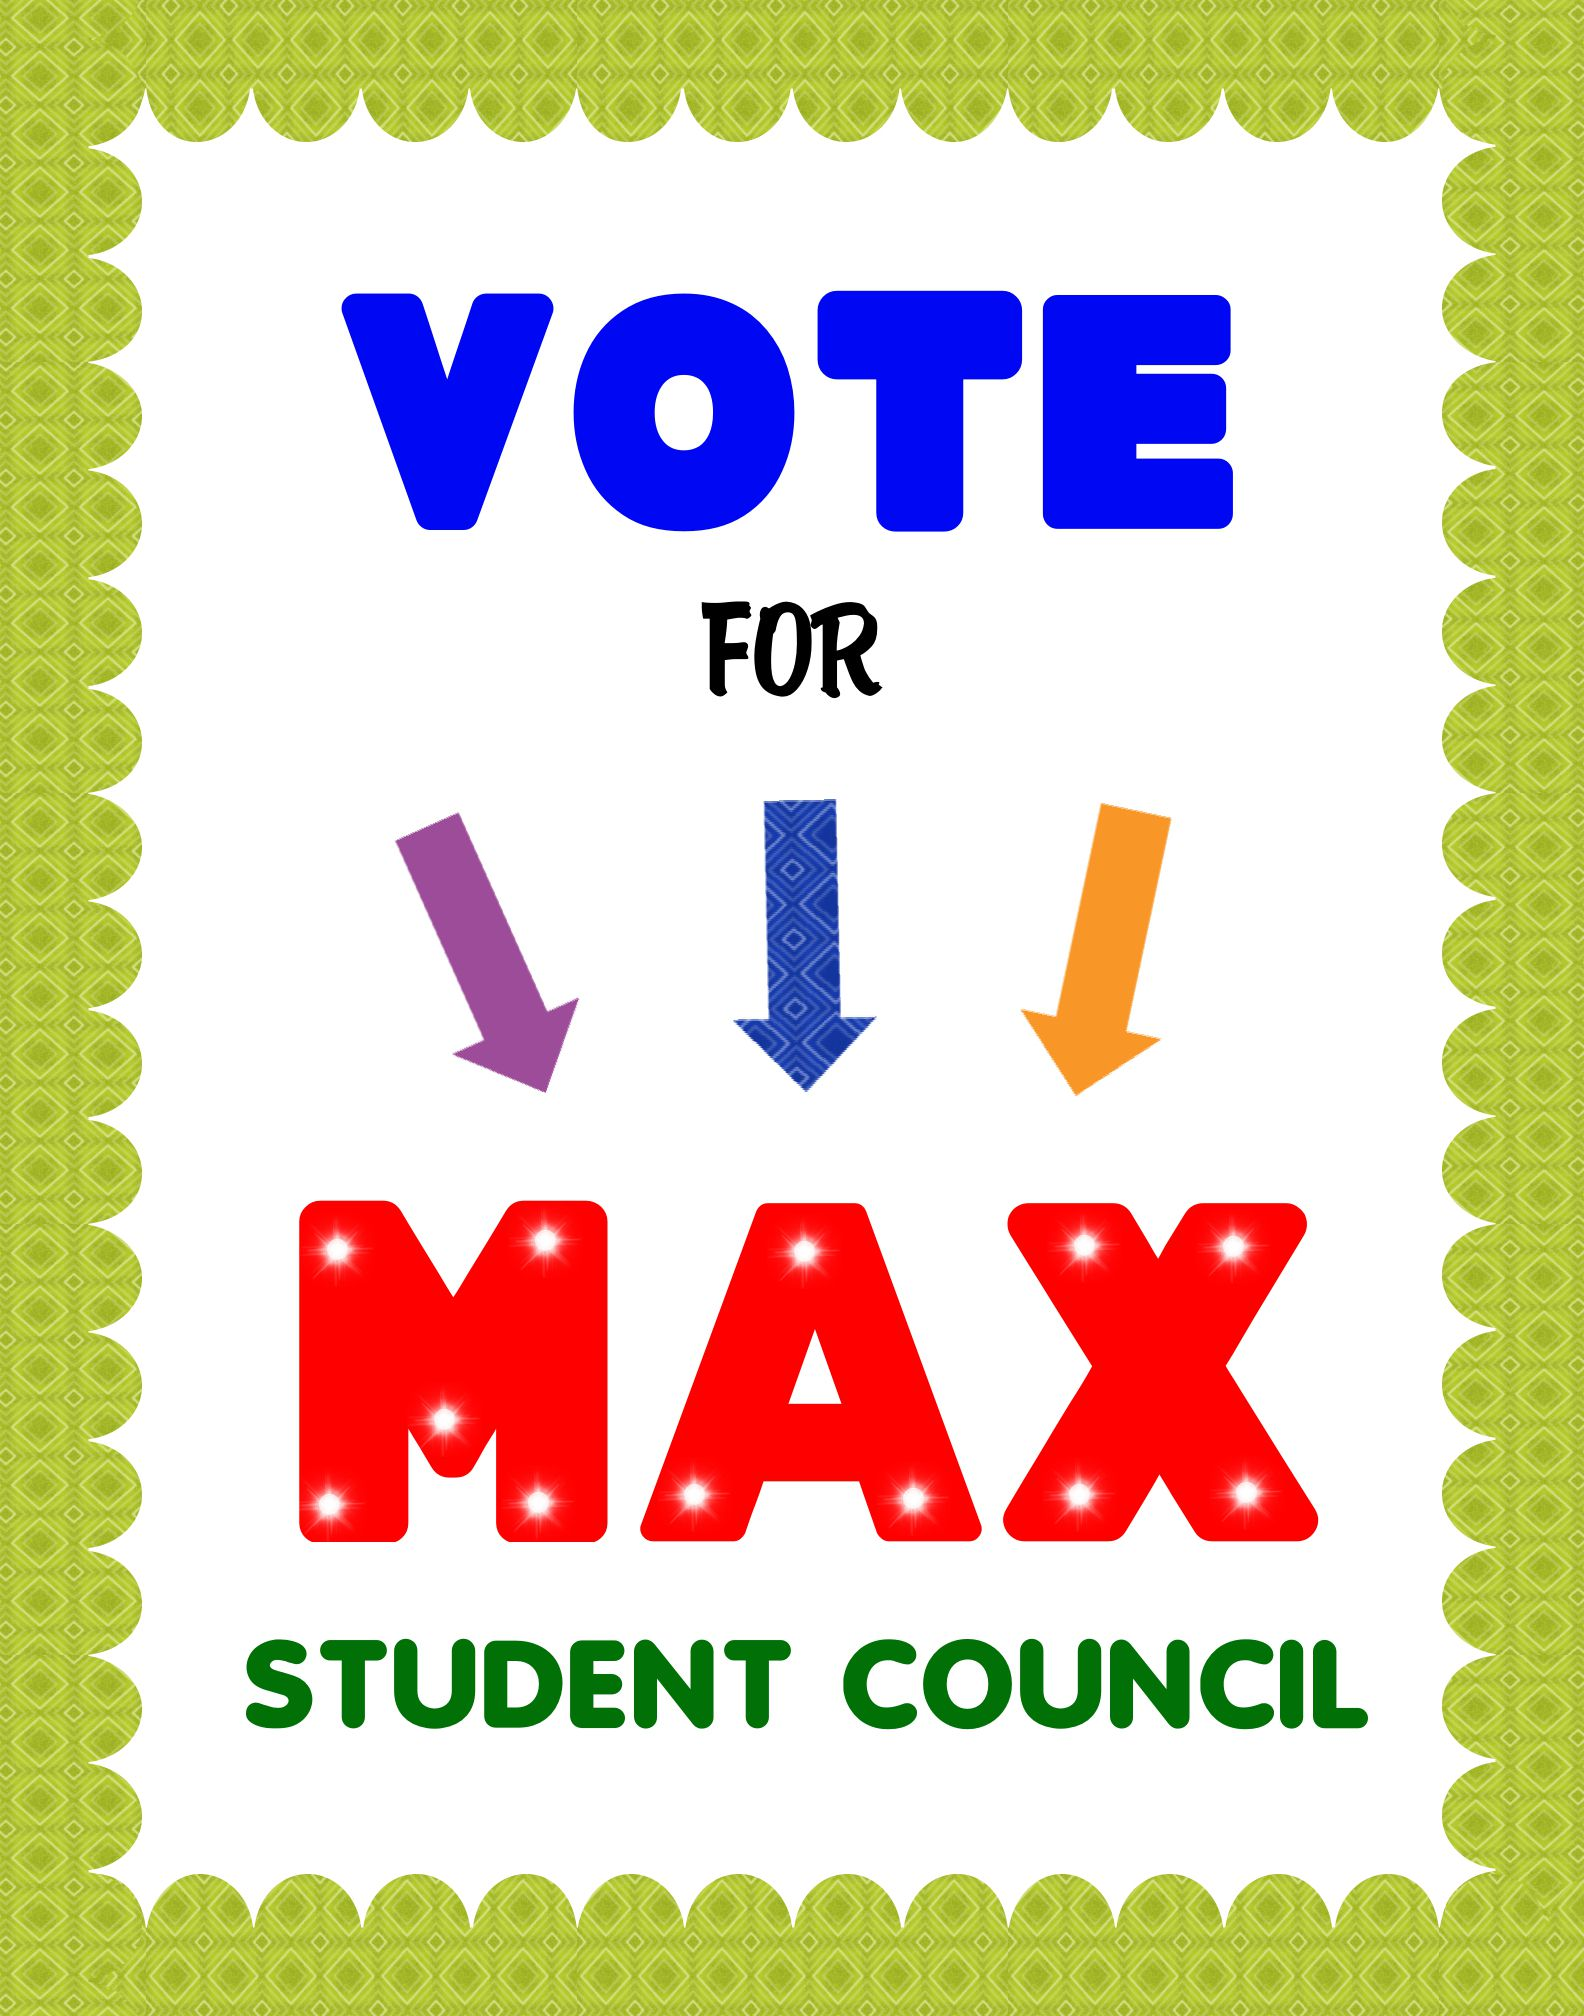 002 Outstanding Free Student Council Campaign Poster Template Sample Full